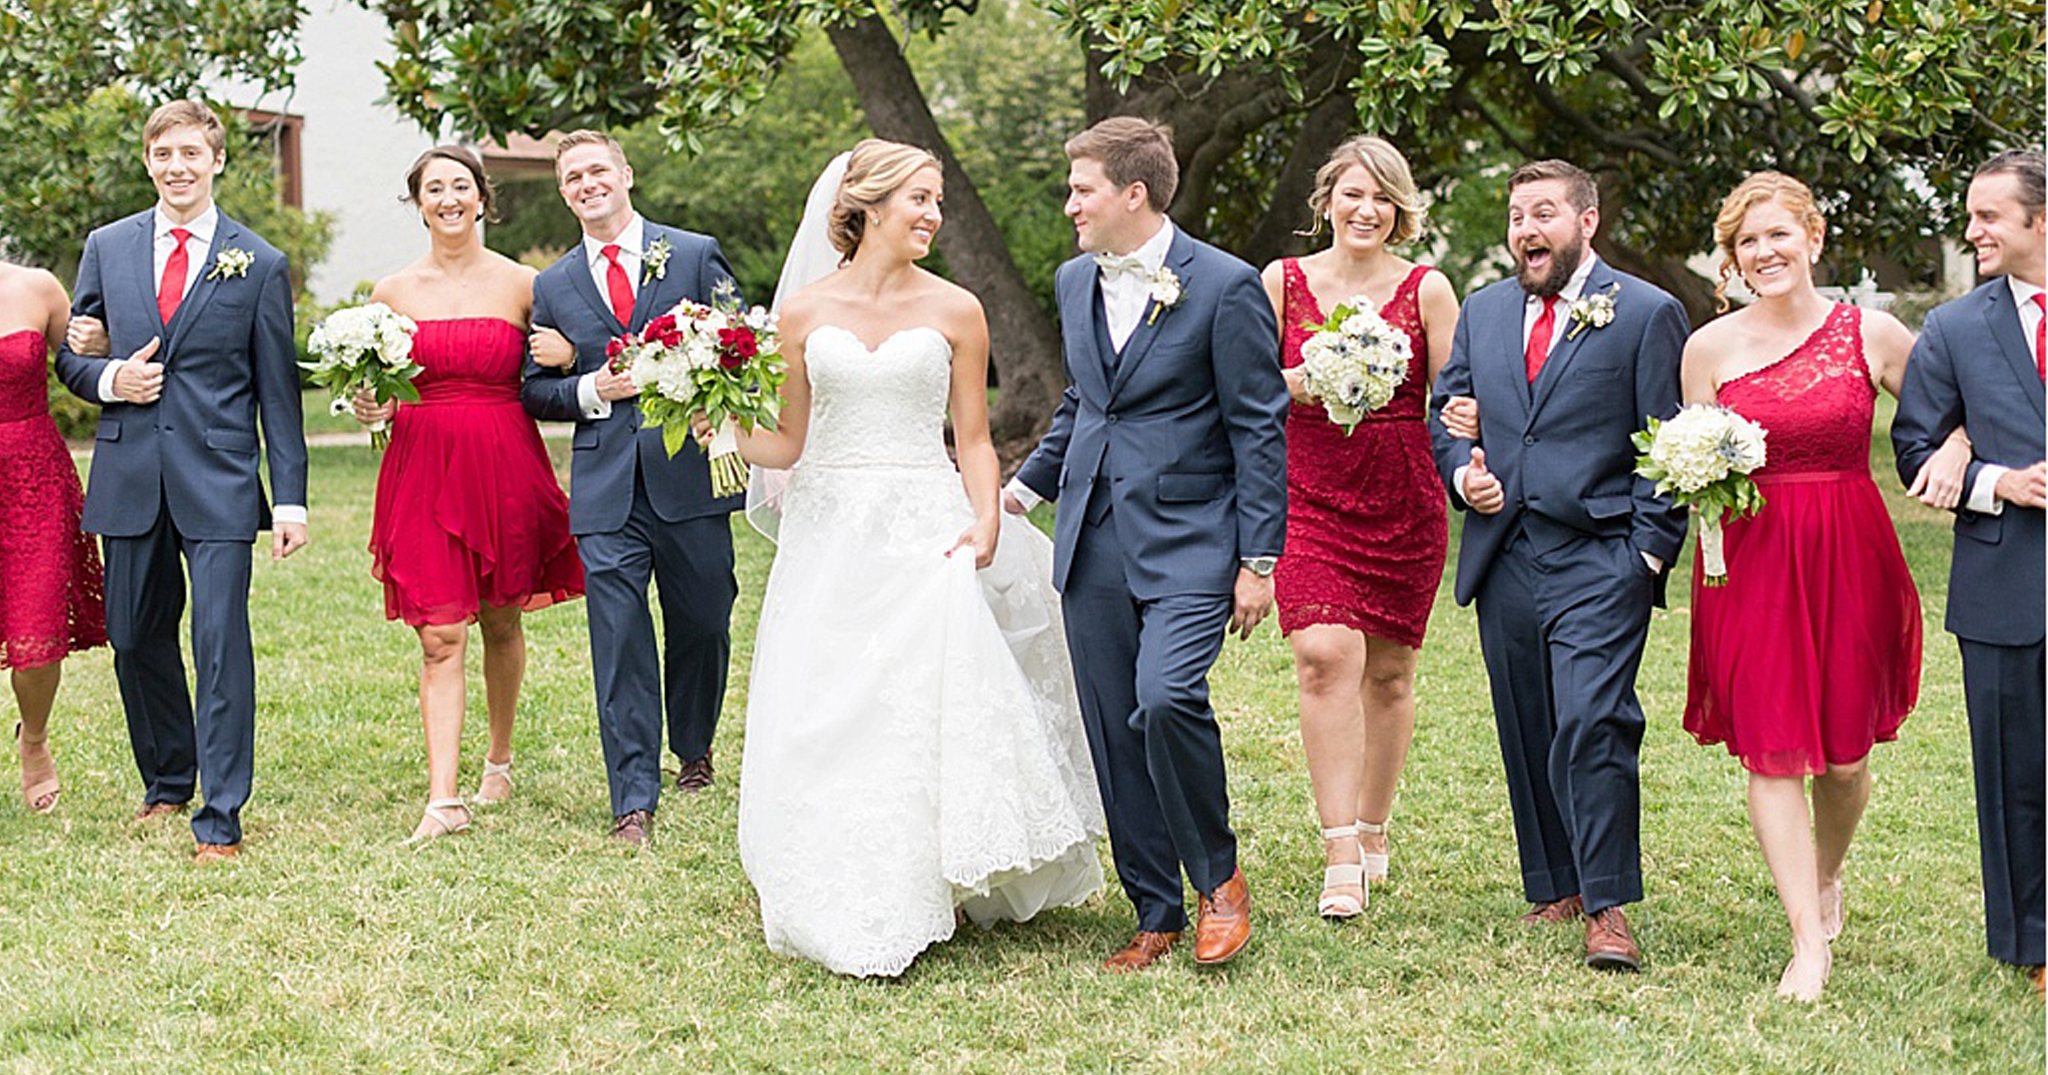 10 Red, White And Blue Wedding Ideas On Instagram